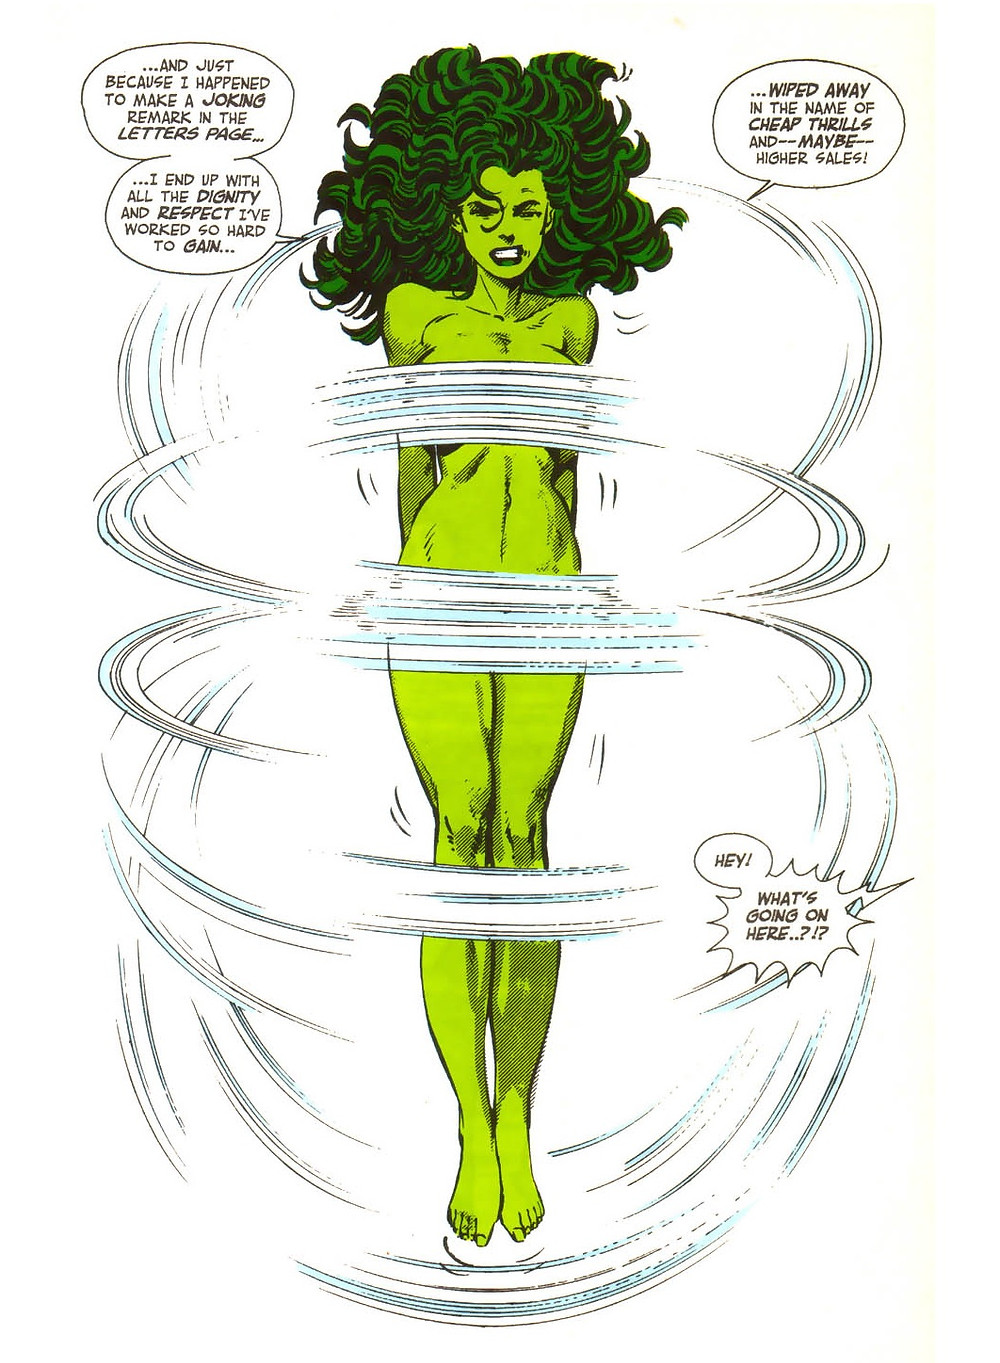 "A full-page excerpt of She-Hulk. She-Hulk is portrayed as a fit woman with light green skin with long, dark green hair fanned out over her head. She has a look of frustration on her face and her pointed toes give the effect of her jumping. There are motion lines around her meant to convey a jump rope, and these lines are the only thing covering up She-Hulk's apparently naked body. She has two speech bubbles on either side of her head that read: ""...And just because I happened to make a joking remark in the letters page… ...I end up with all the dignity and respect I've worked so hard to gain… … wiped away in the name of cheap thrills and -- maybe -- higher sales!"" A speech bubble with spiky edges in the bottom right corner reads ""Hey! What's going on here!"""